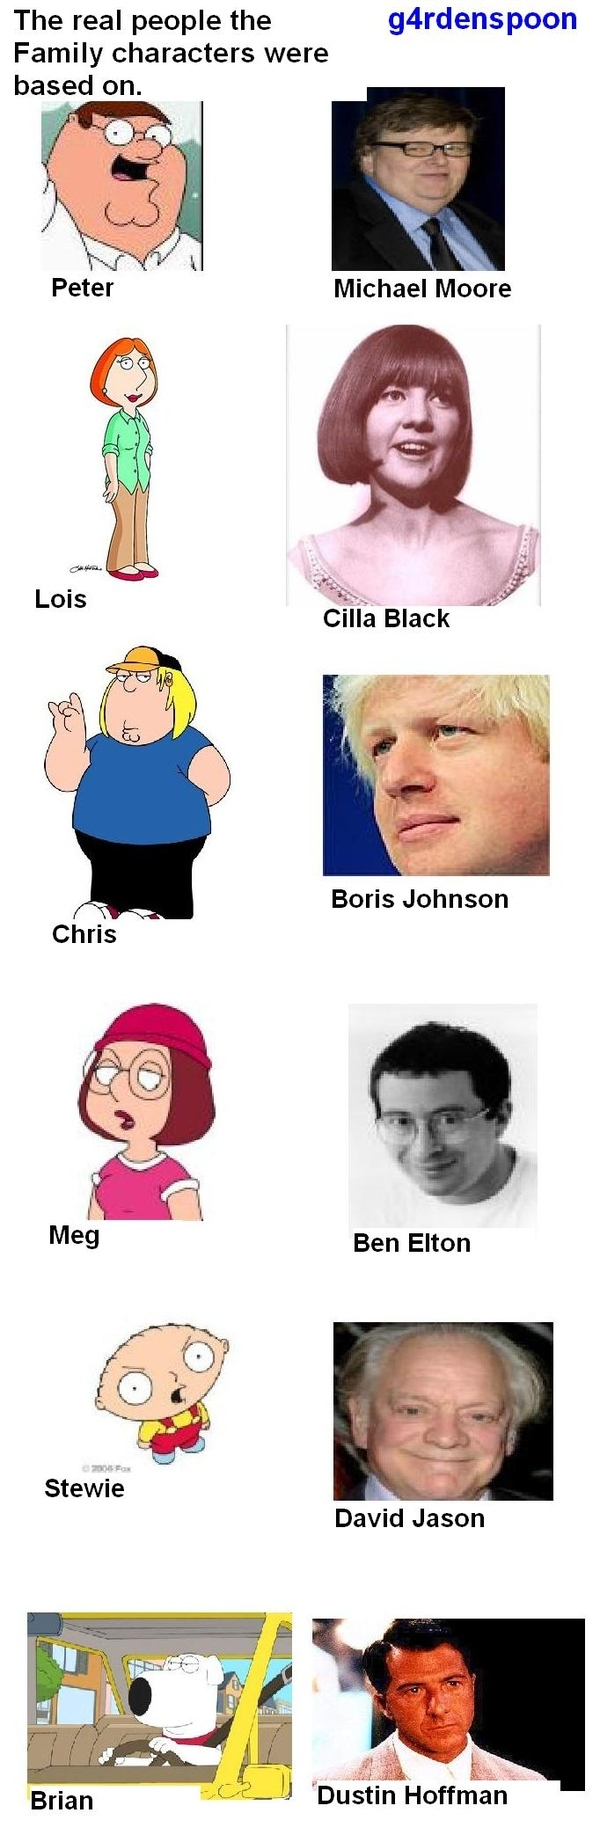 The Real People the Family Guy Characters Were Based On.